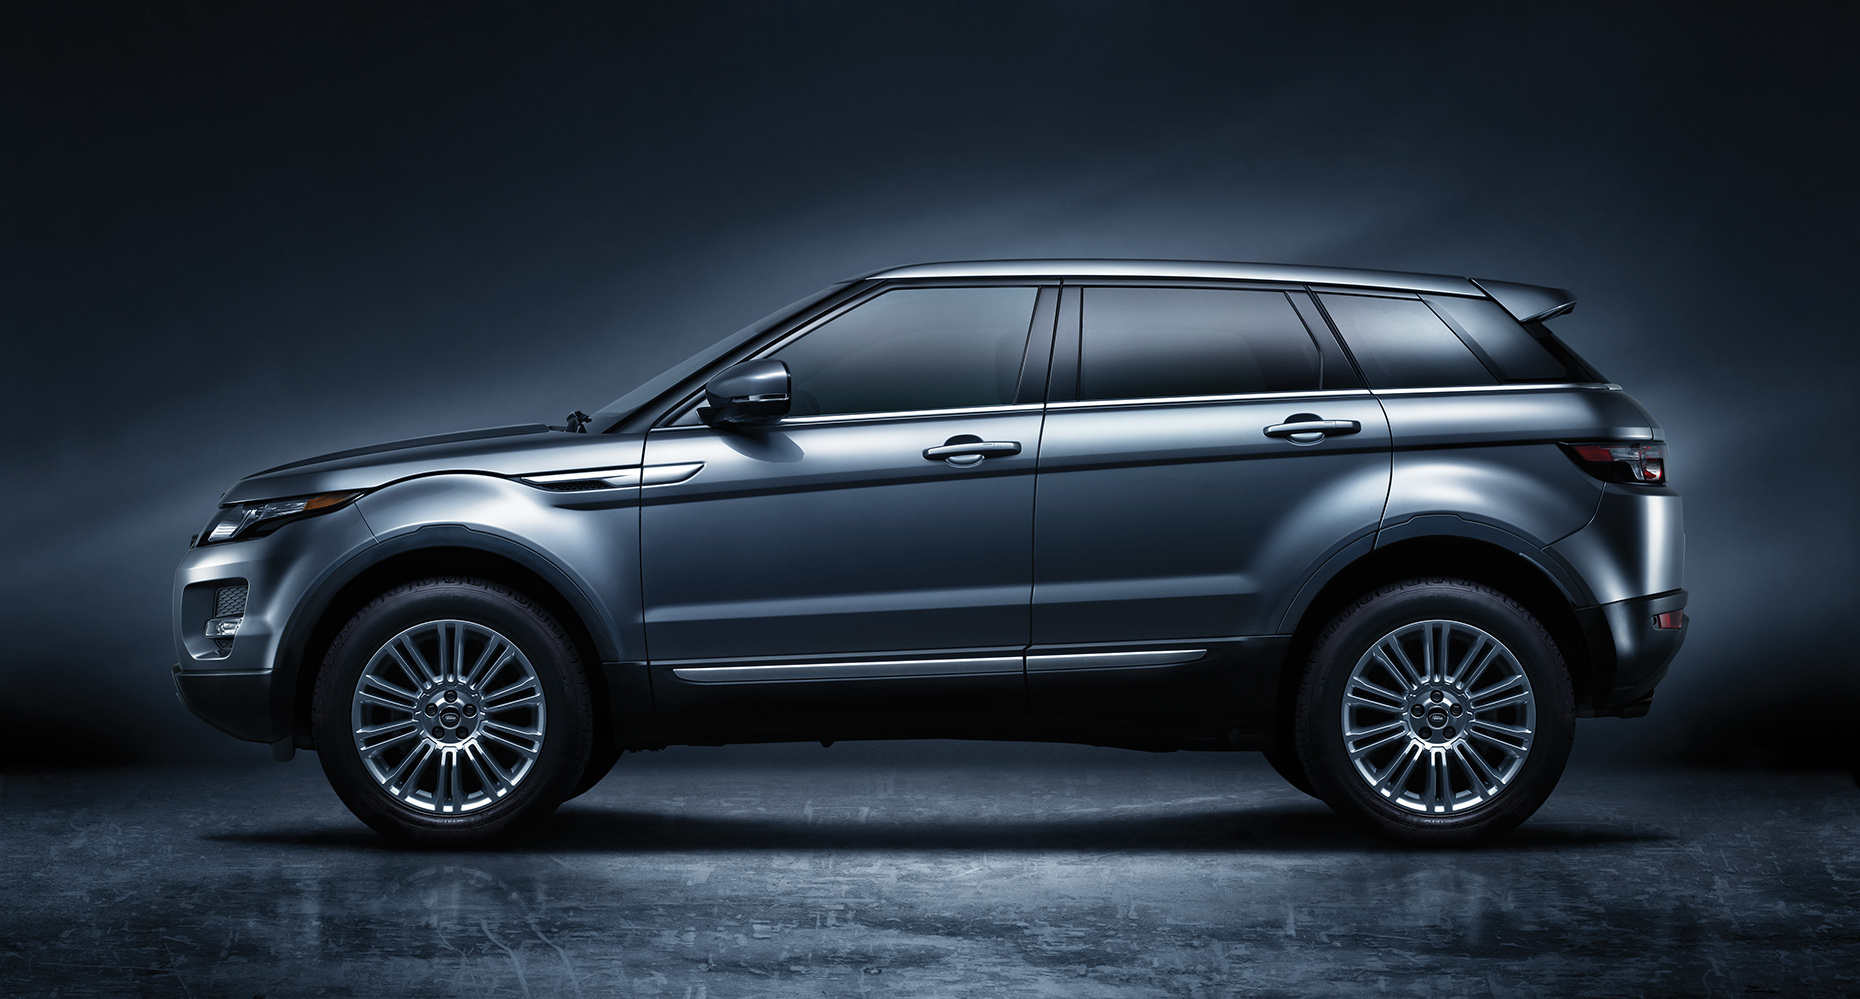 Christopher Nelson Photography|Land Rover|Evoque|Profile